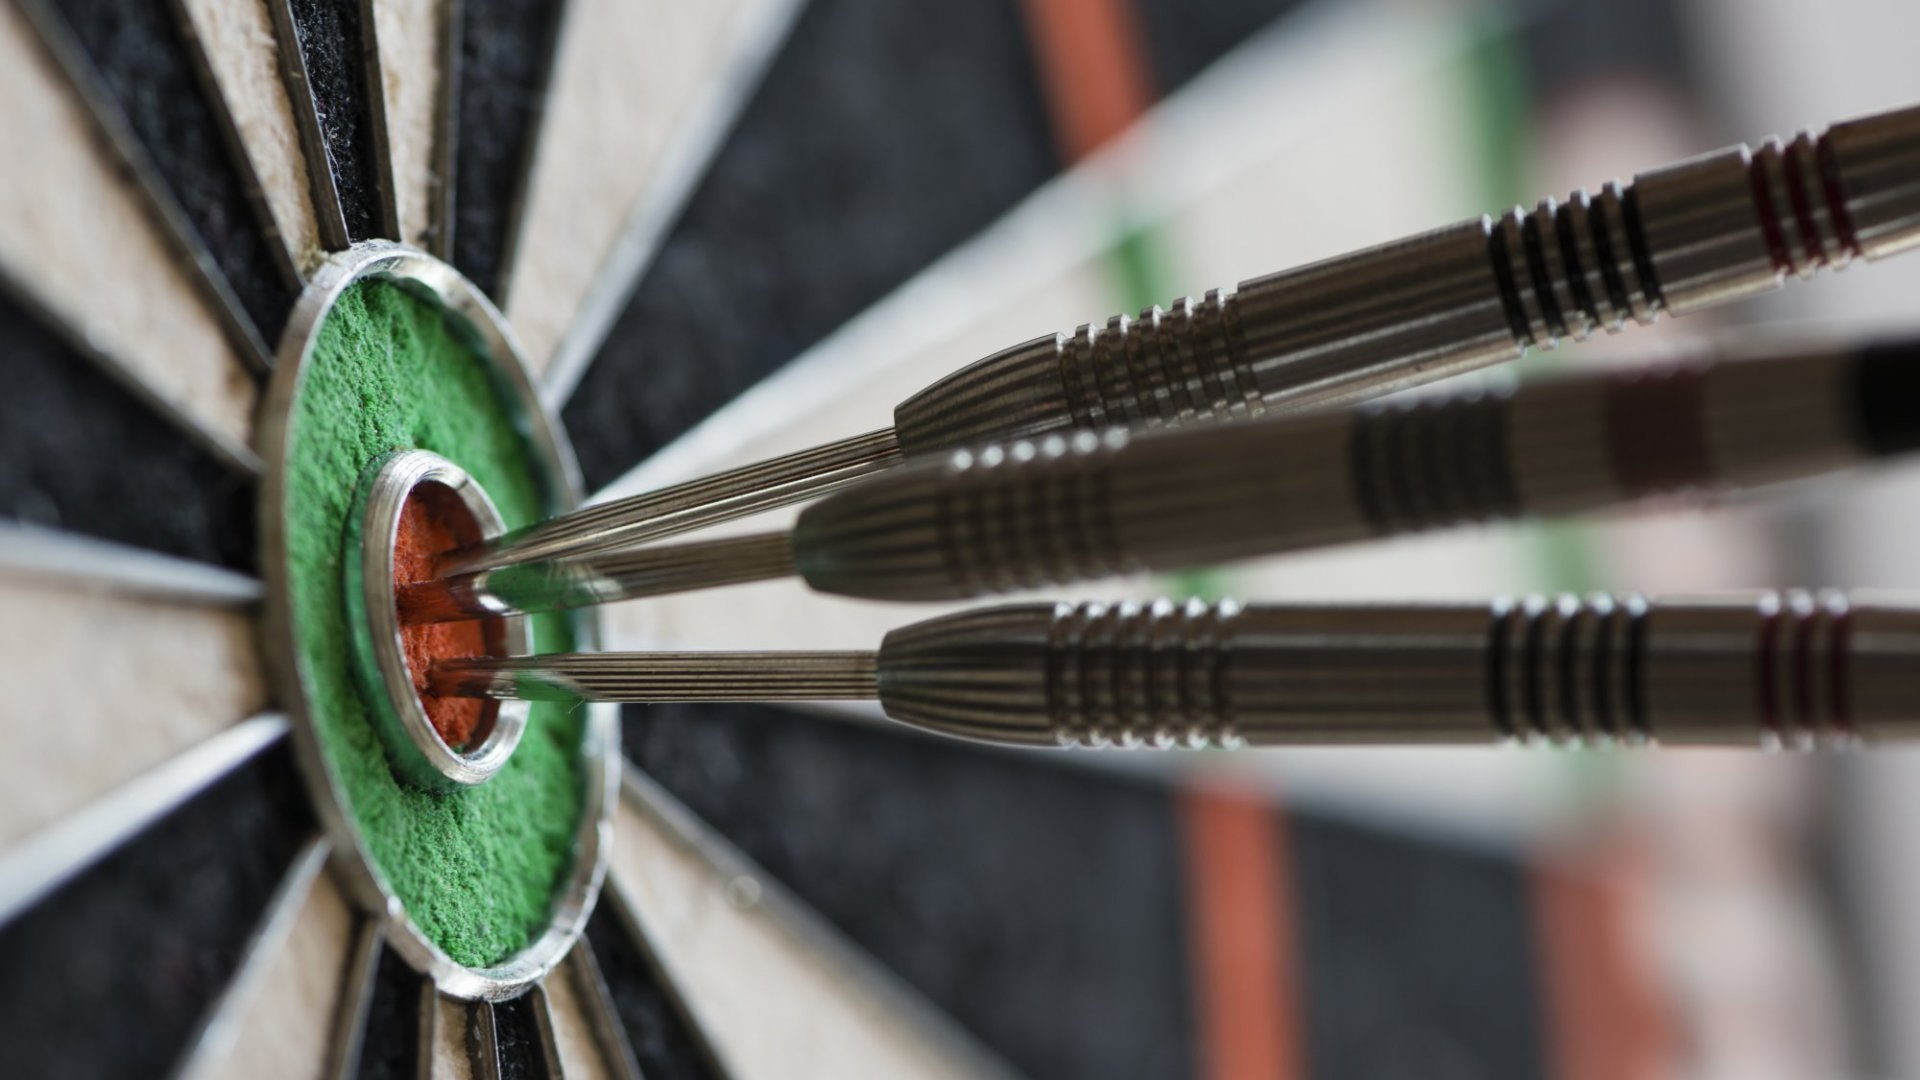 Want to hit the bullseye again and again? Try these principles for serial success.